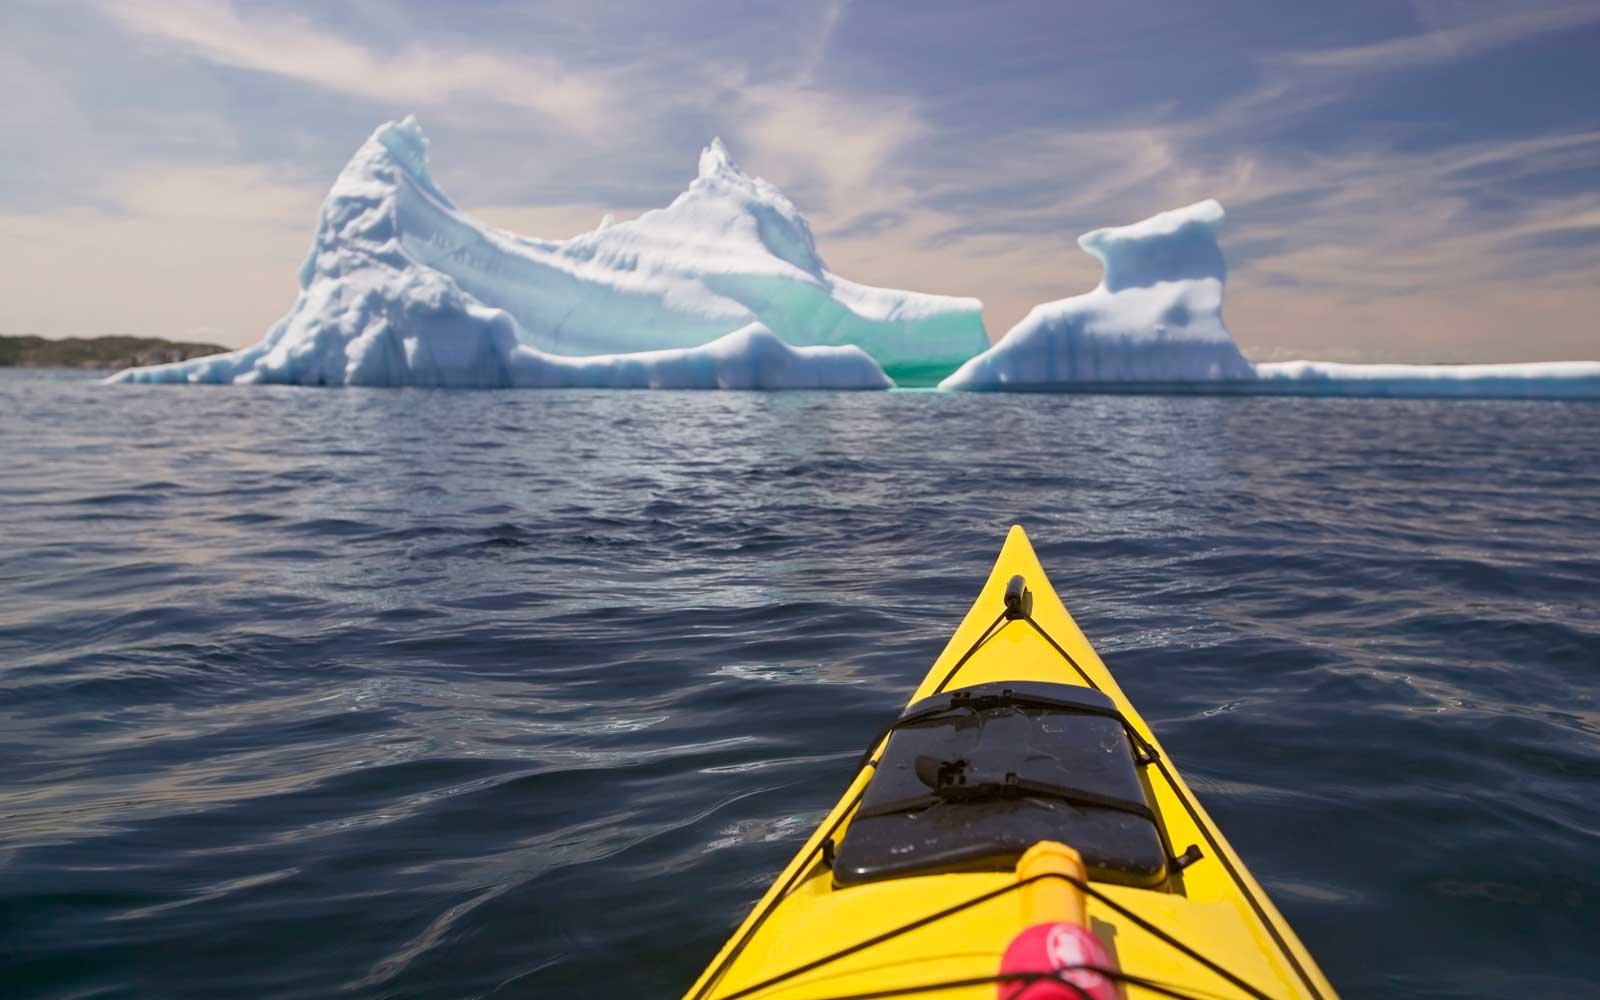 Kayaking with Iceberg, near Merritt's Habour, close to Twillingate, Kittiwake Coast, Newfoundland, Canada.